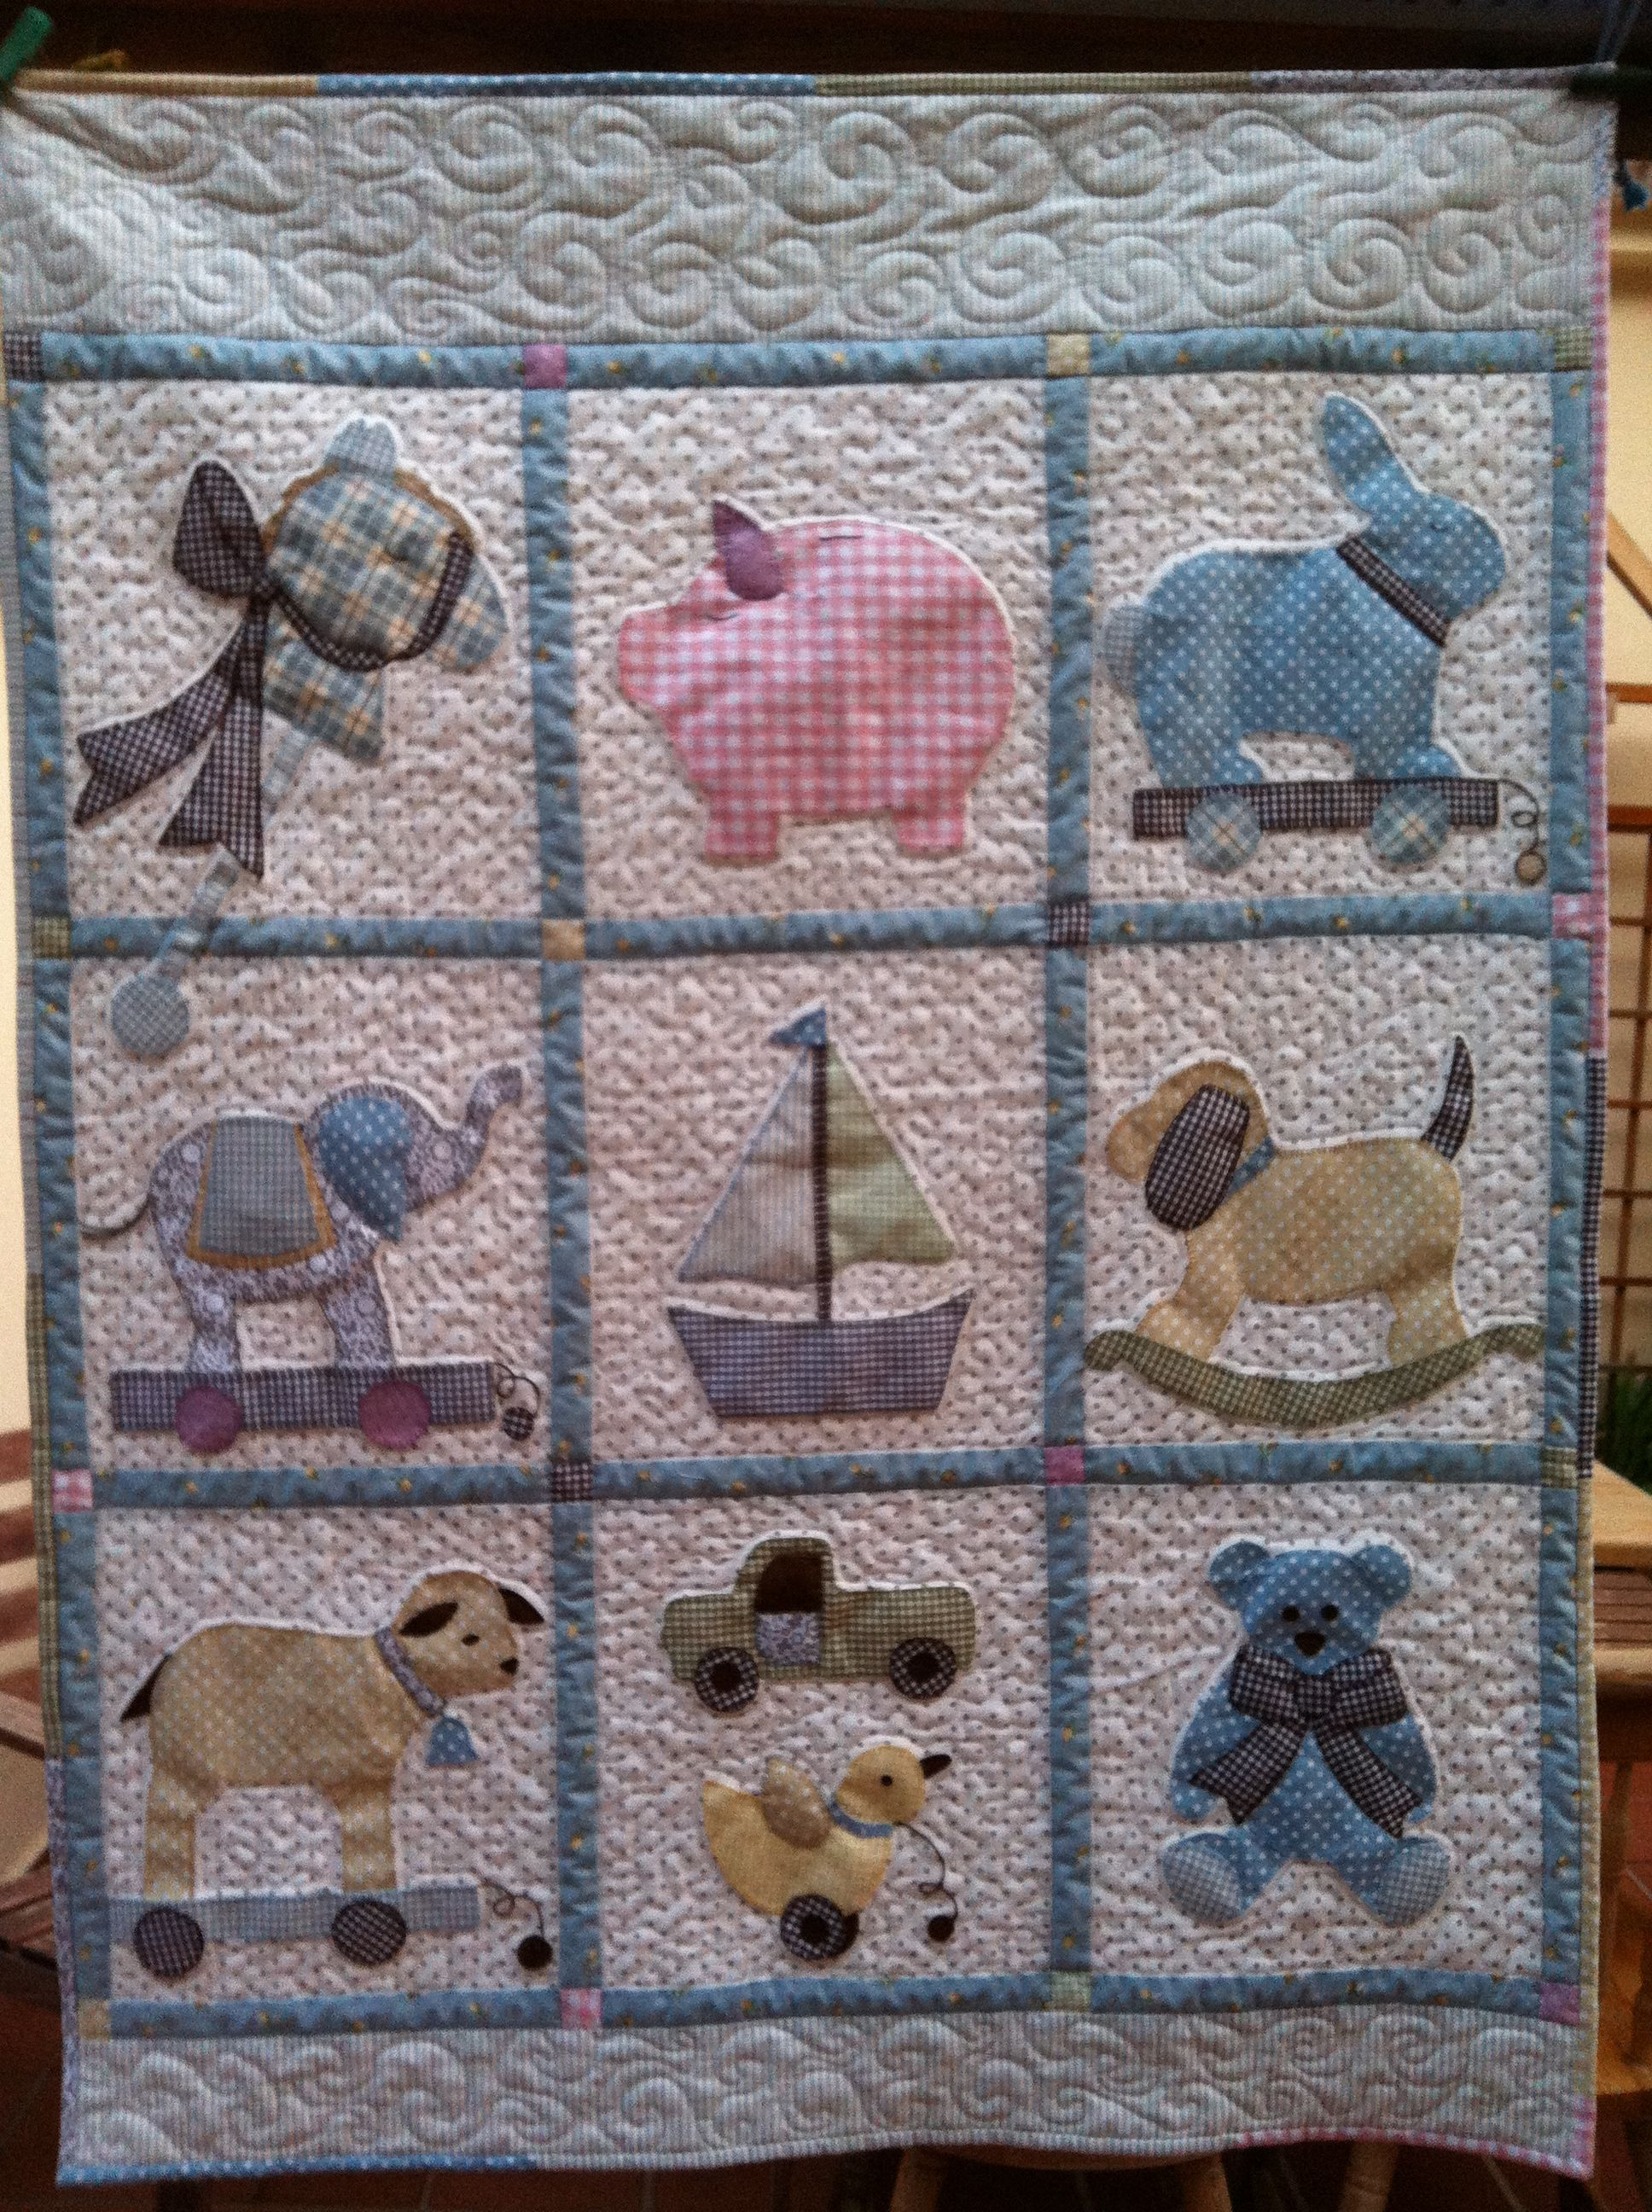 Colcha bebe pasword manualidades pinterest - Colchas cuna patchwork ...